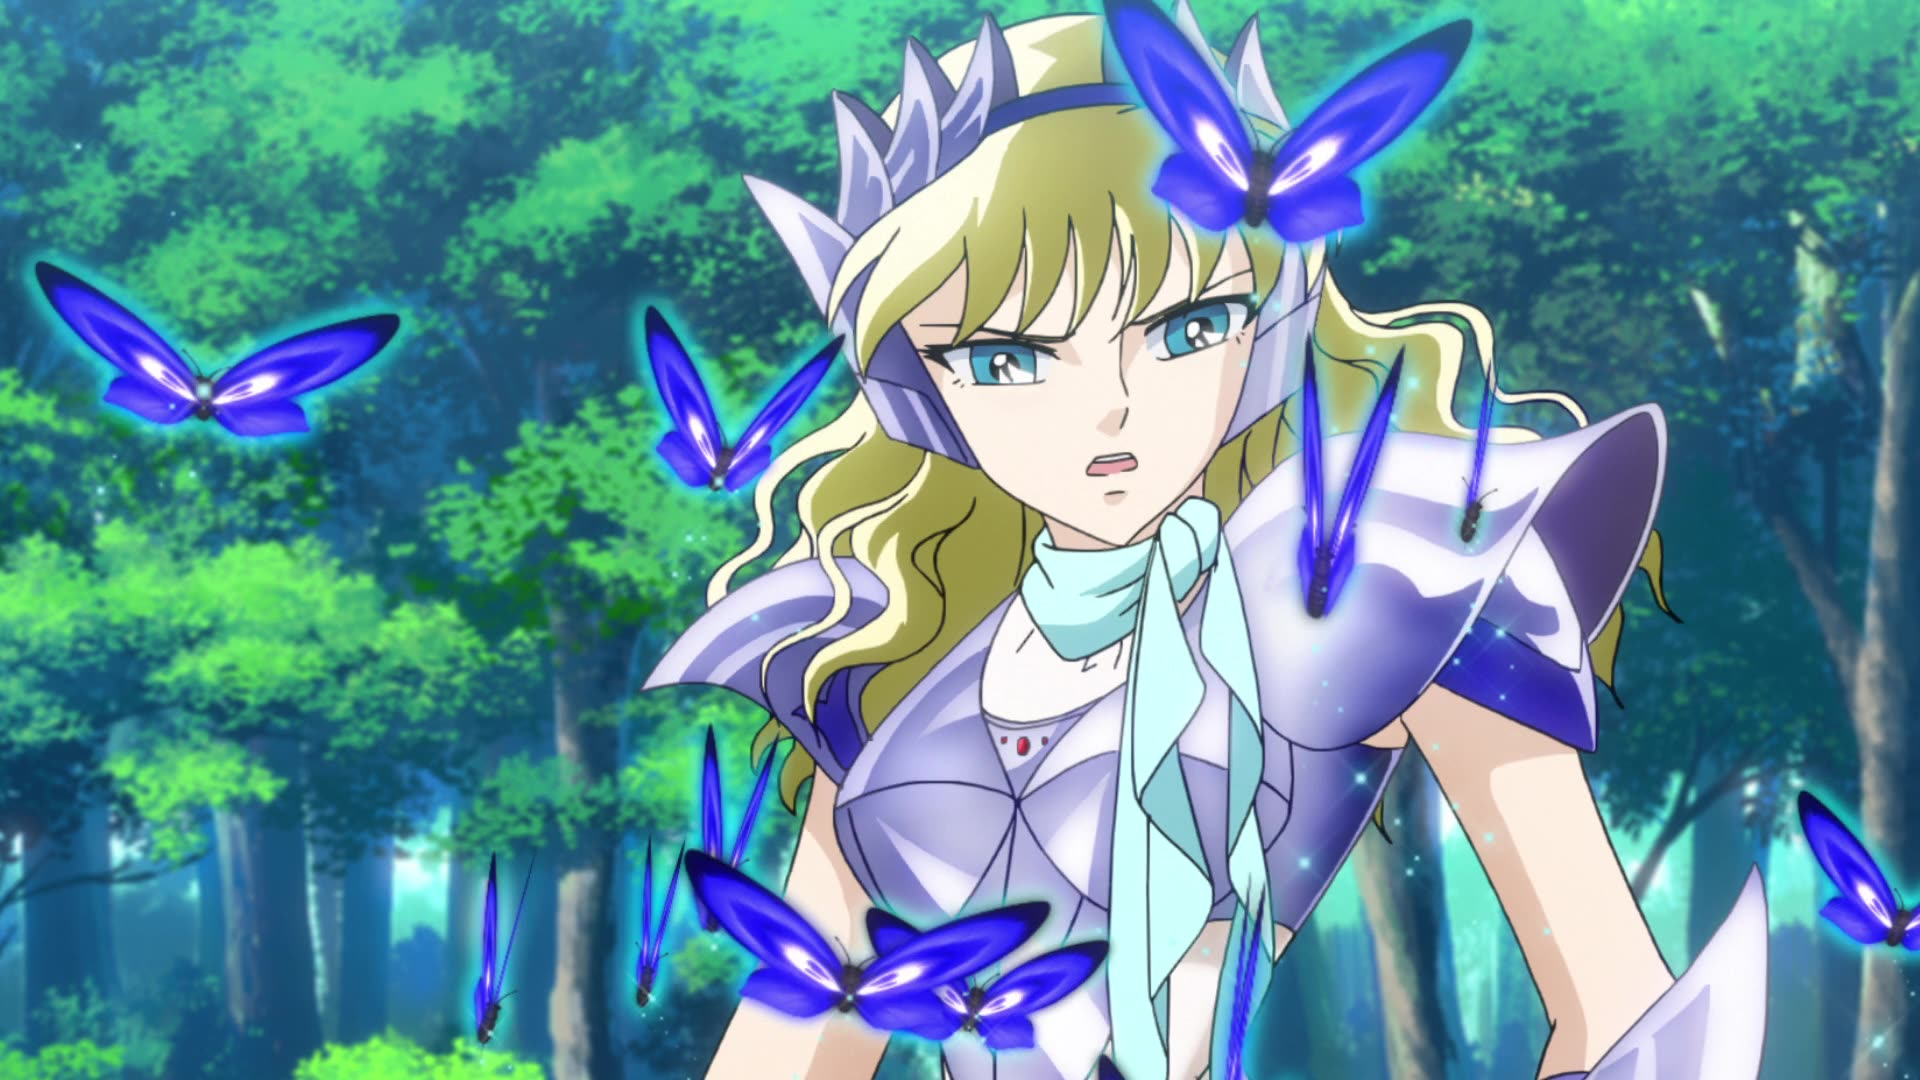 A blonde saintia in armor with blue butterflies around her.